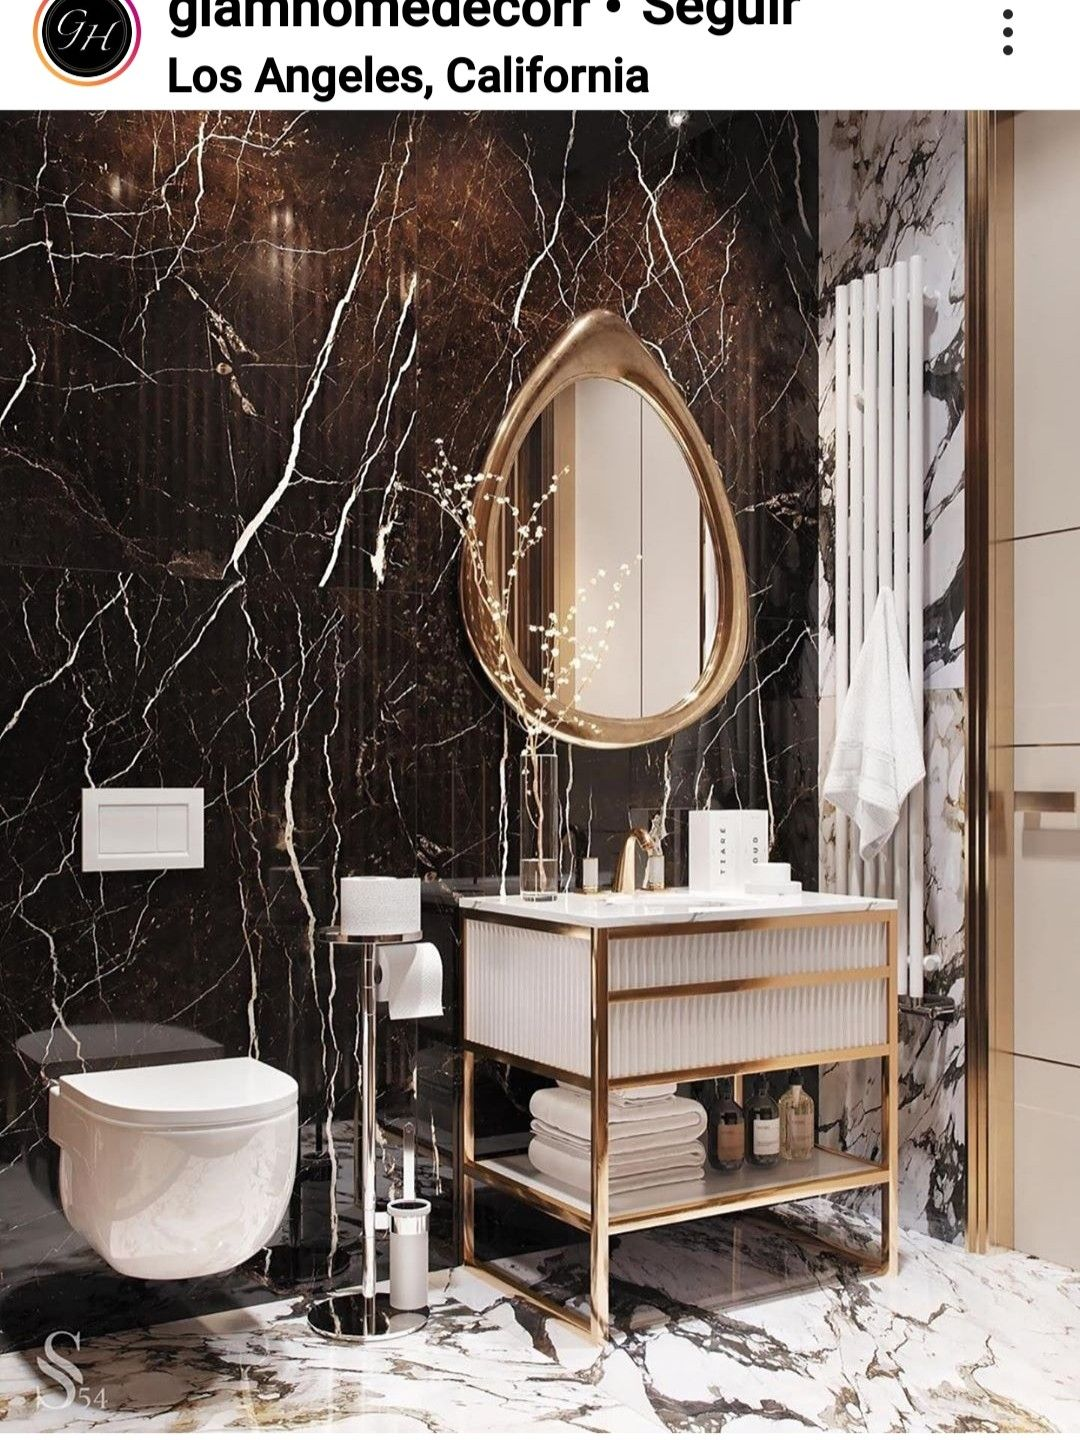 Guest Bathroom Design Image By Refilwe Diale On Design Bathroom